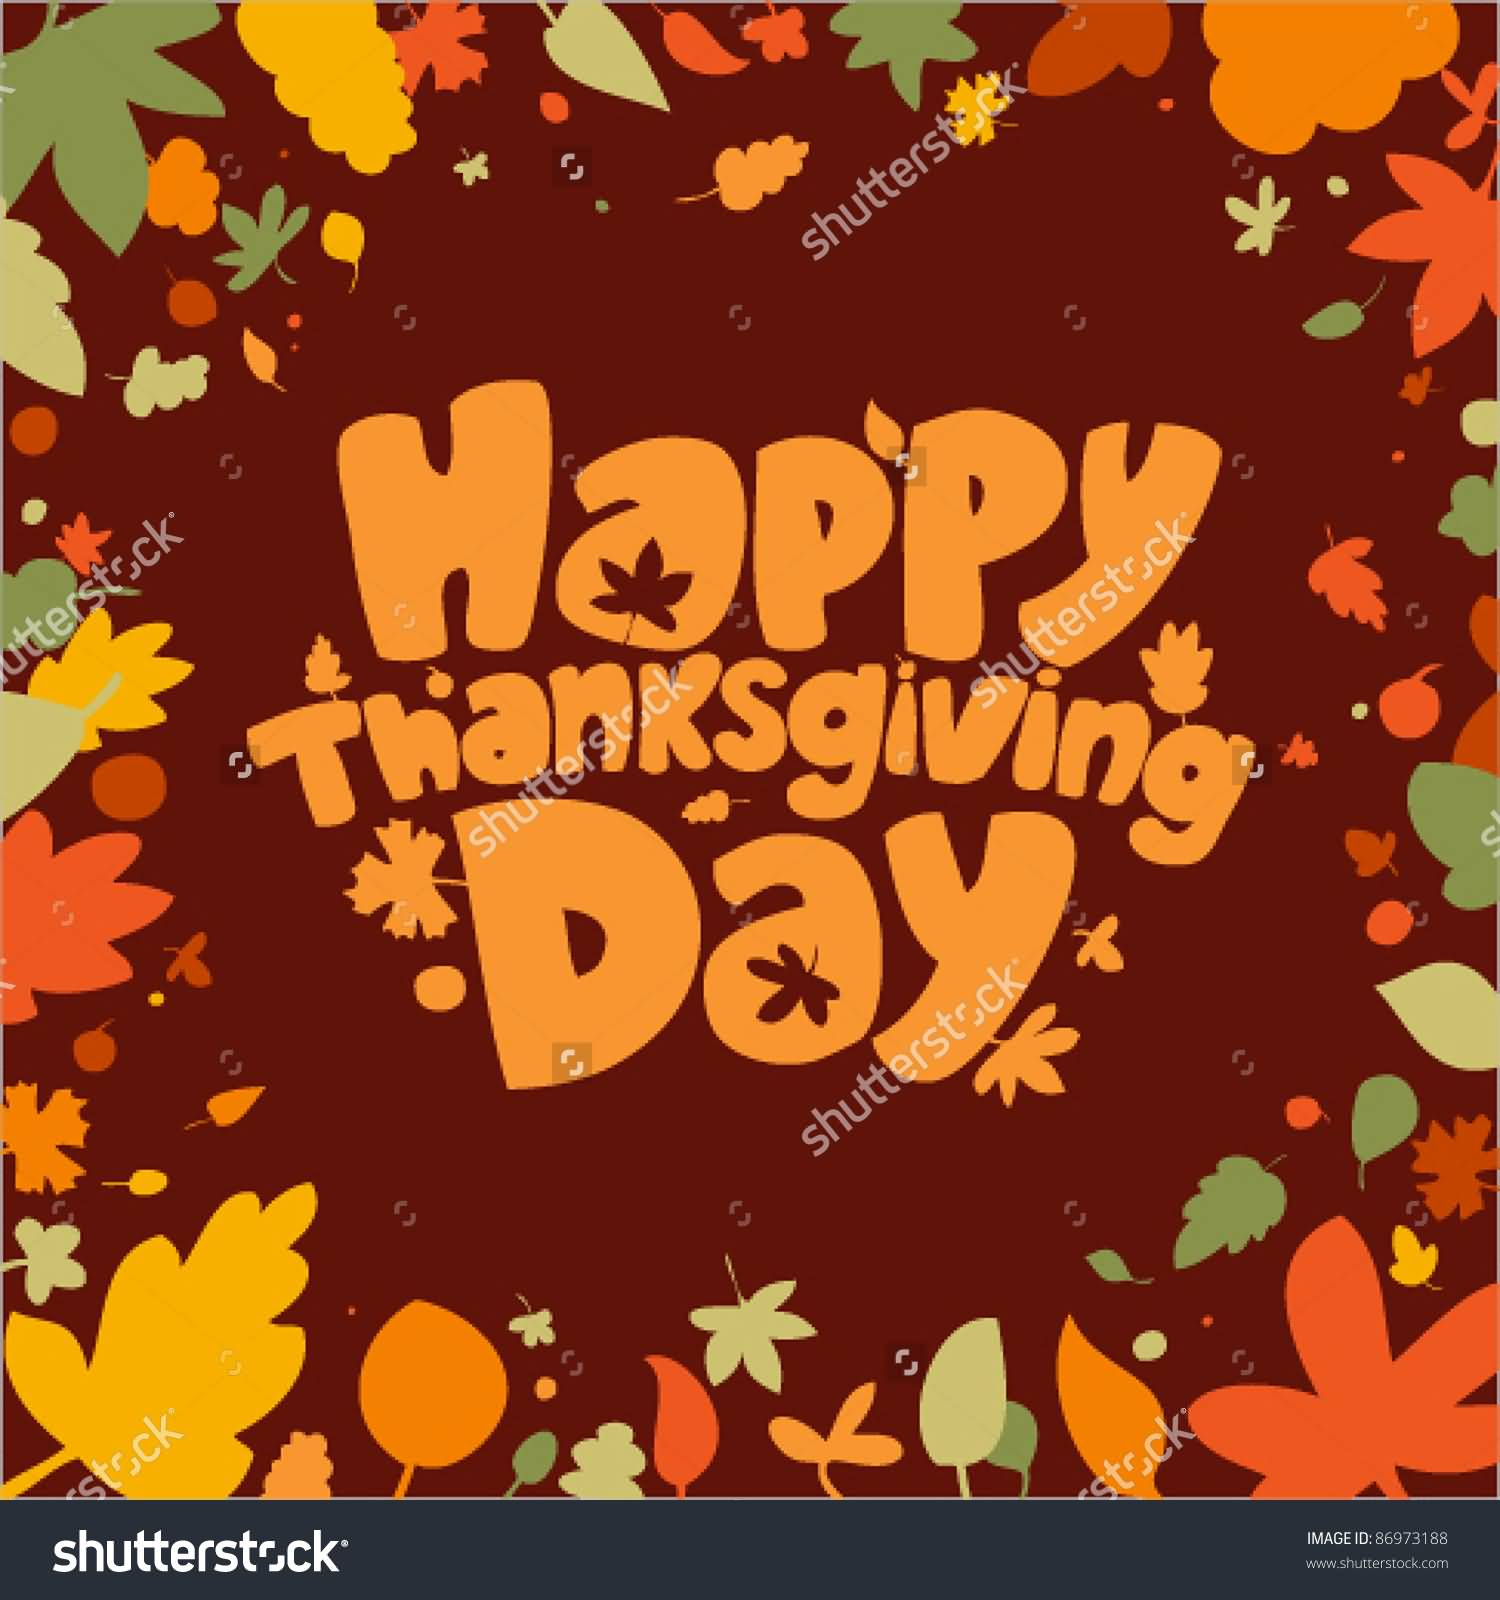 A Happy Thanksgiving Day Turkey PictureSponsored Links